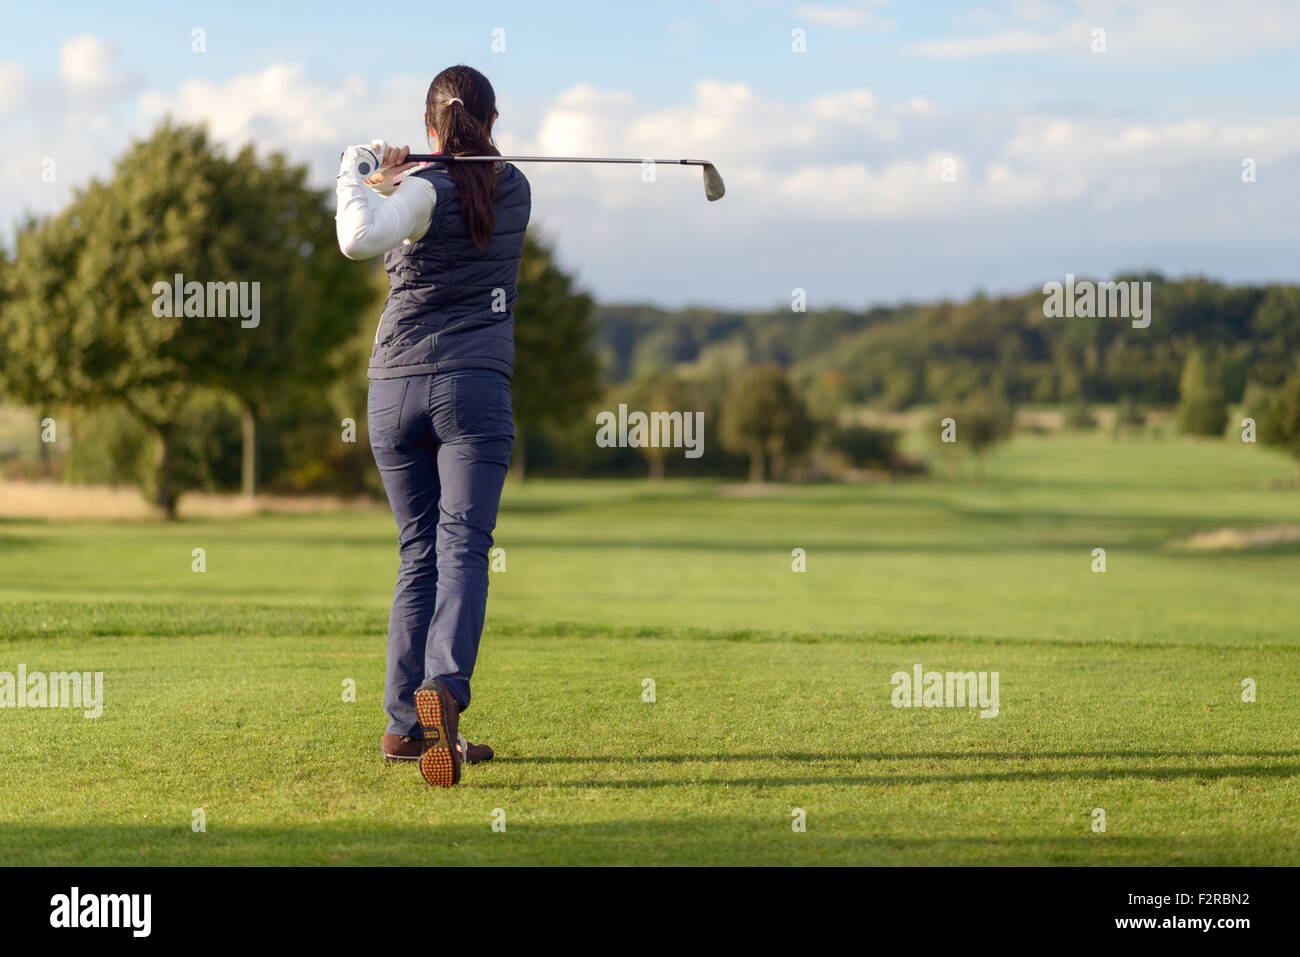 Female golfer striking a golf ball on a golf course, full body rear view looking down the golf course - Stock Image